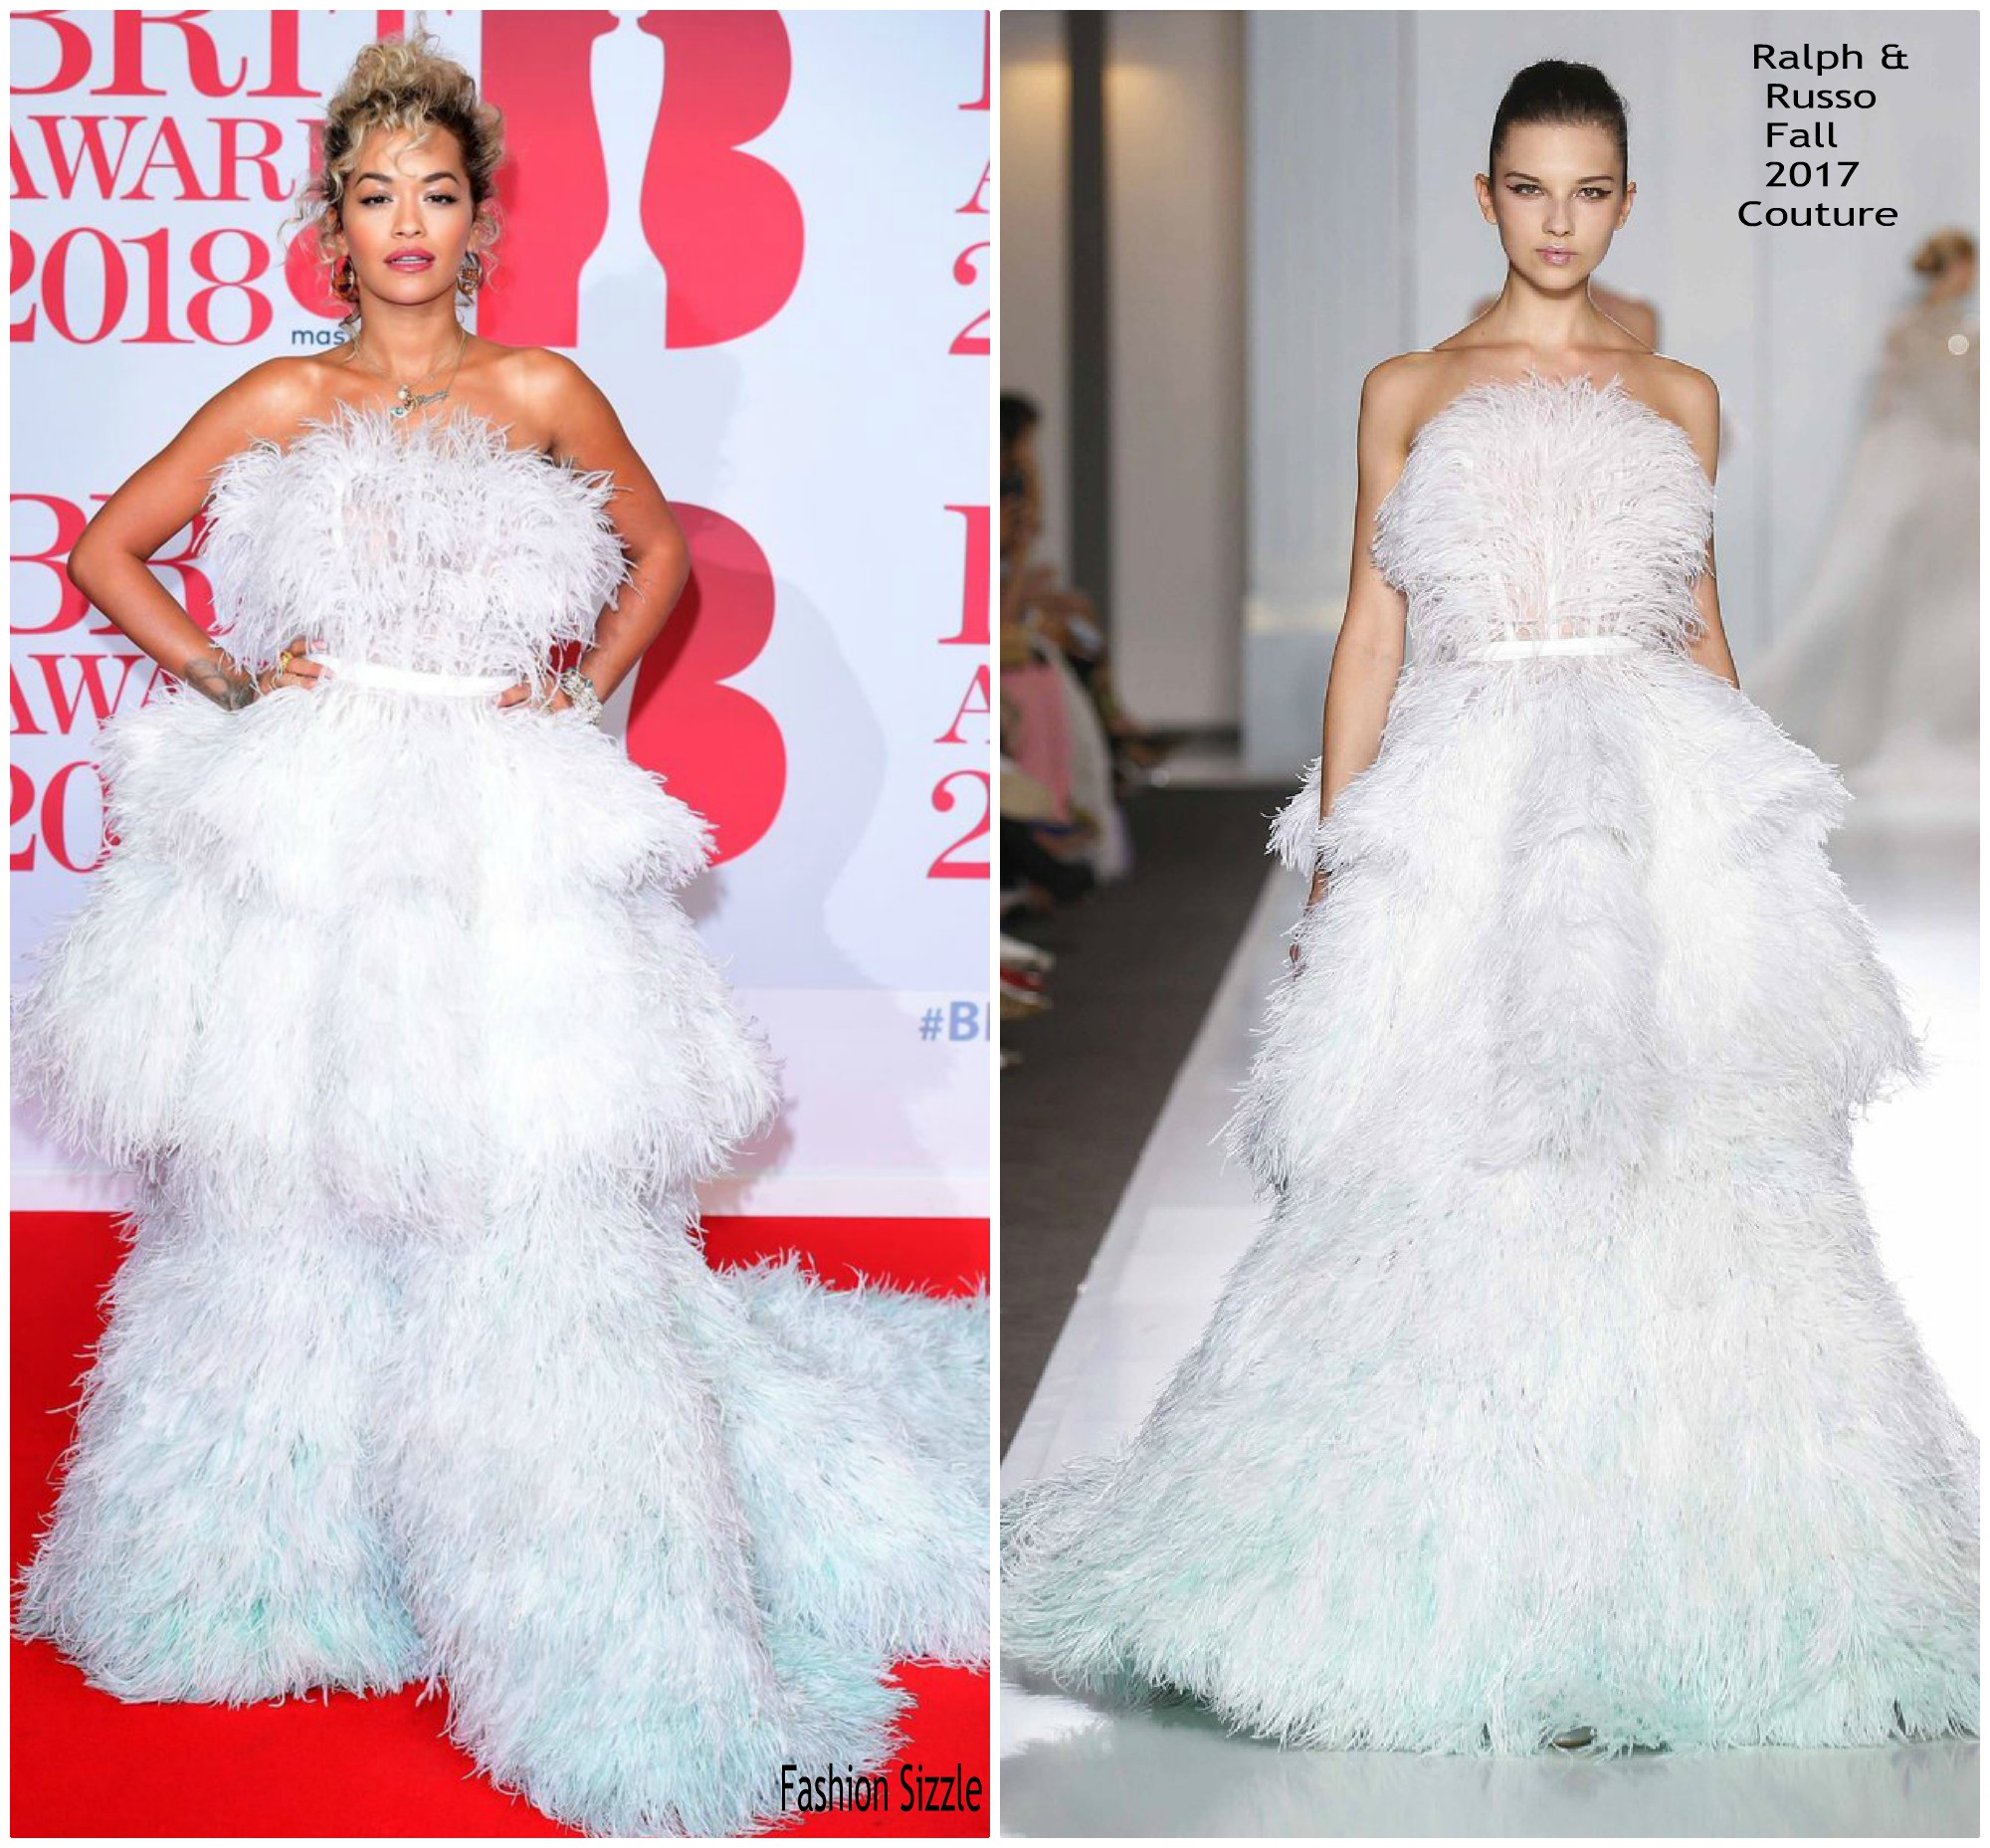 rita-ora-in-ralph-russo-couture-brit-awards-2018